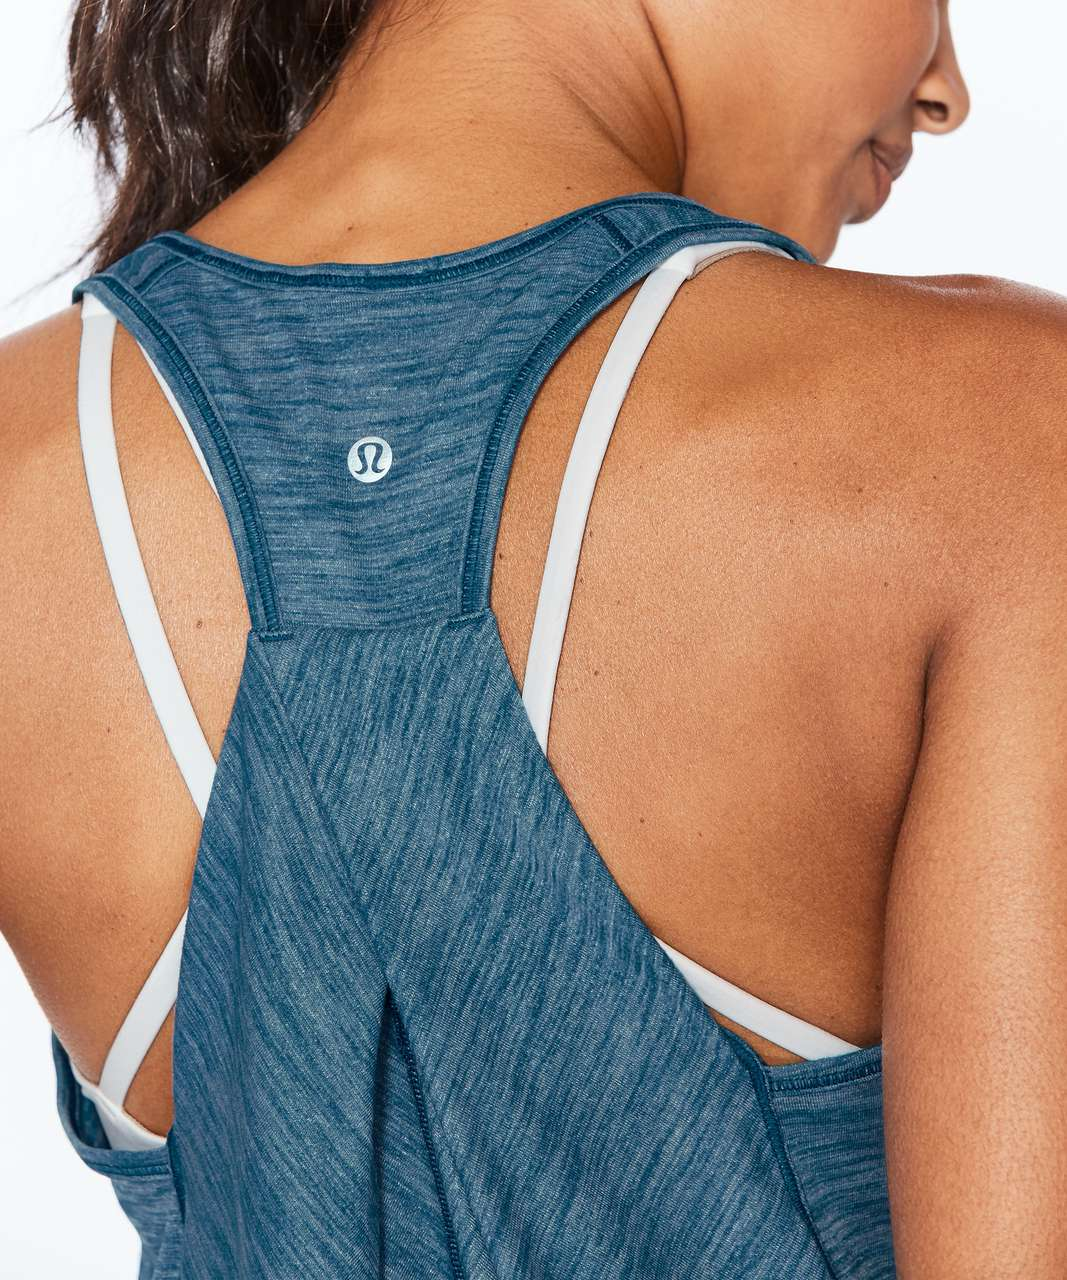 Lululemon Essential Tank - Heathered Whirlpool